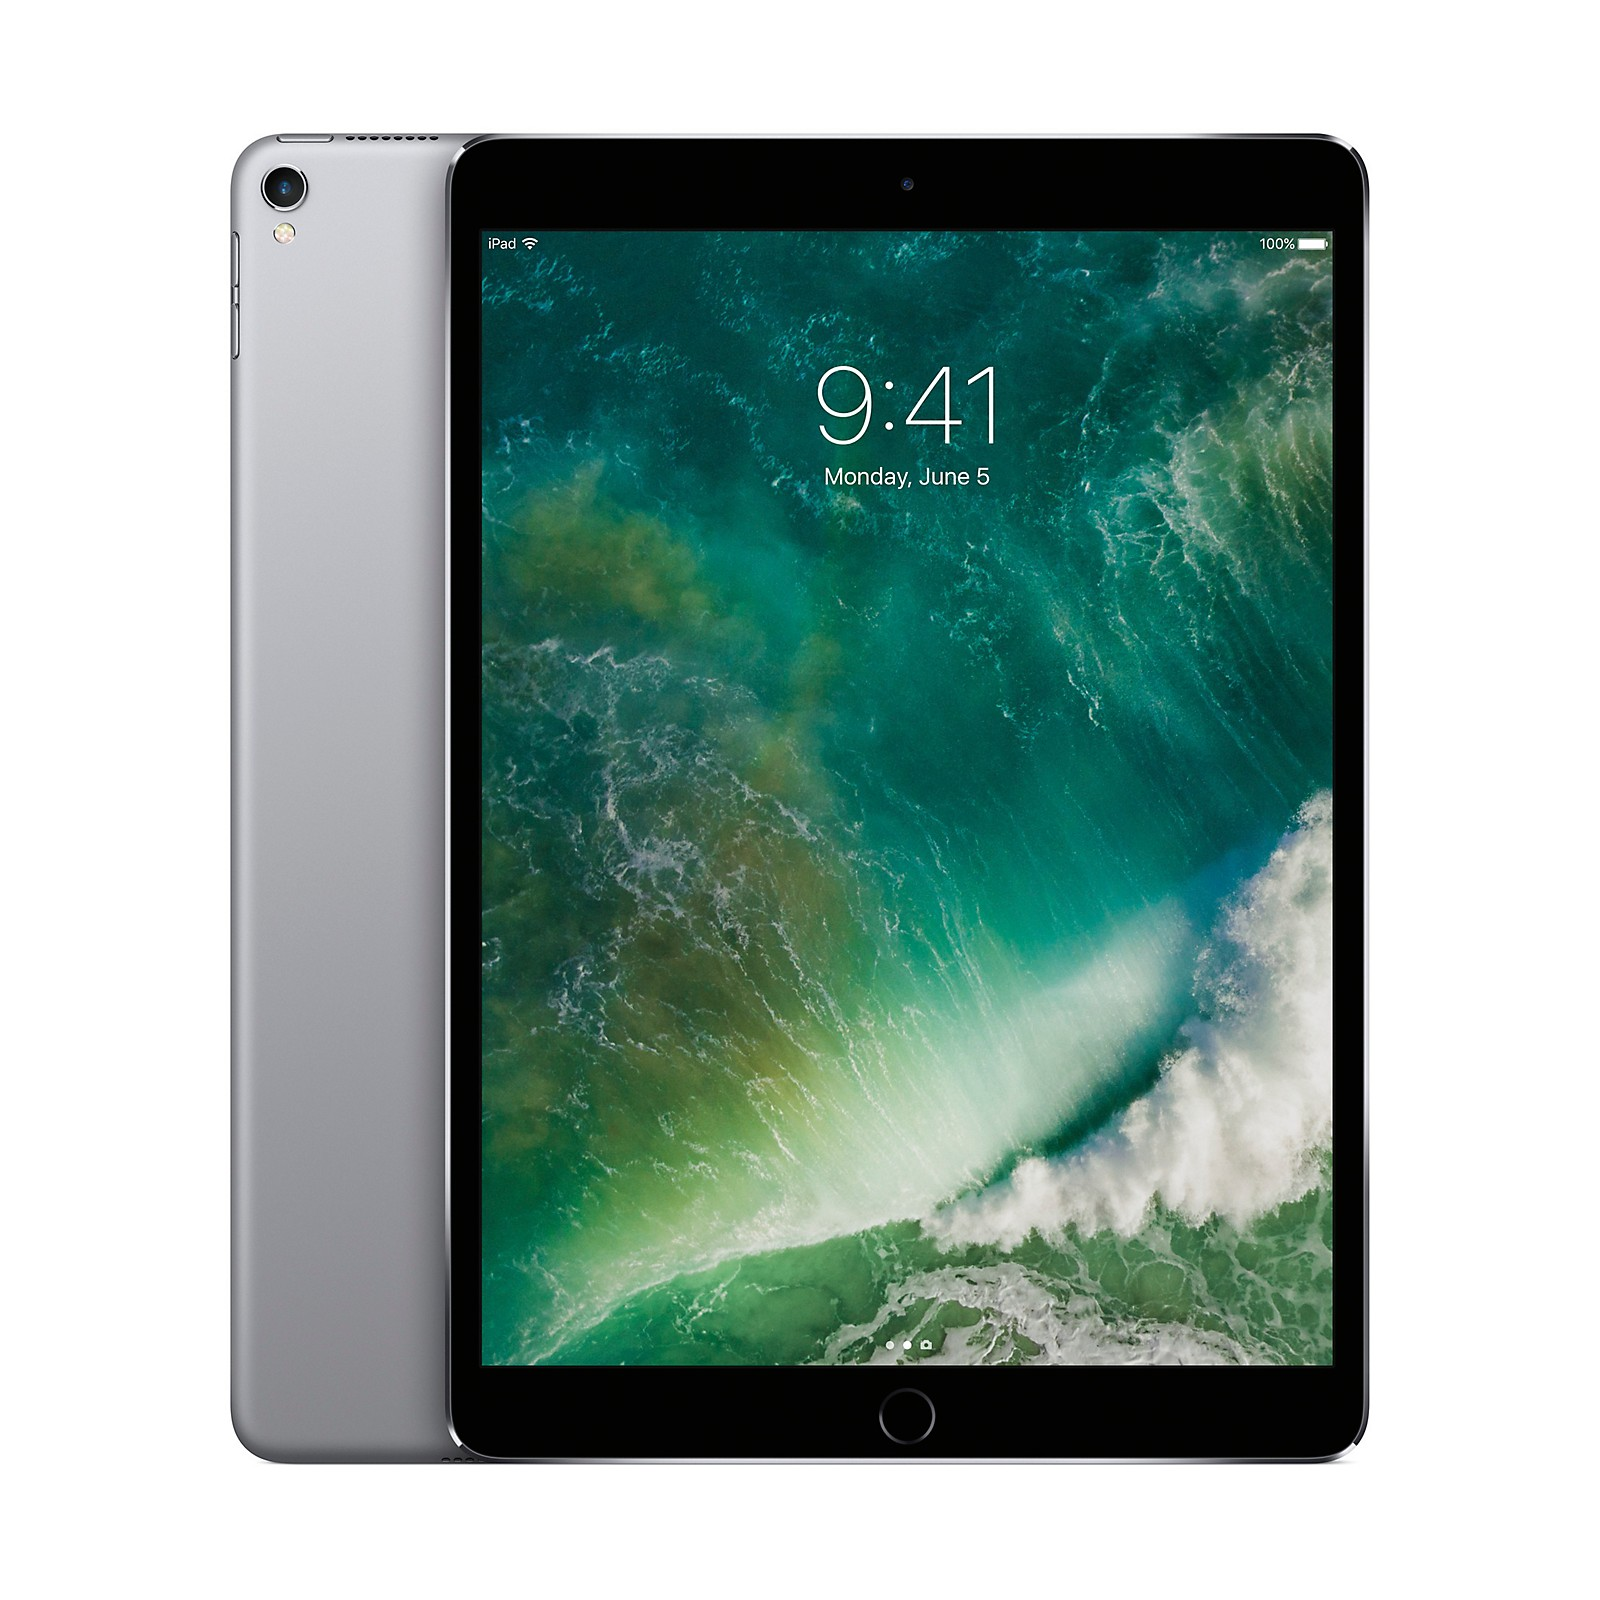 Apple iPad Pro 10.5 in. 64GB Wi-Fi Space Gray (MQDT2LL/A)